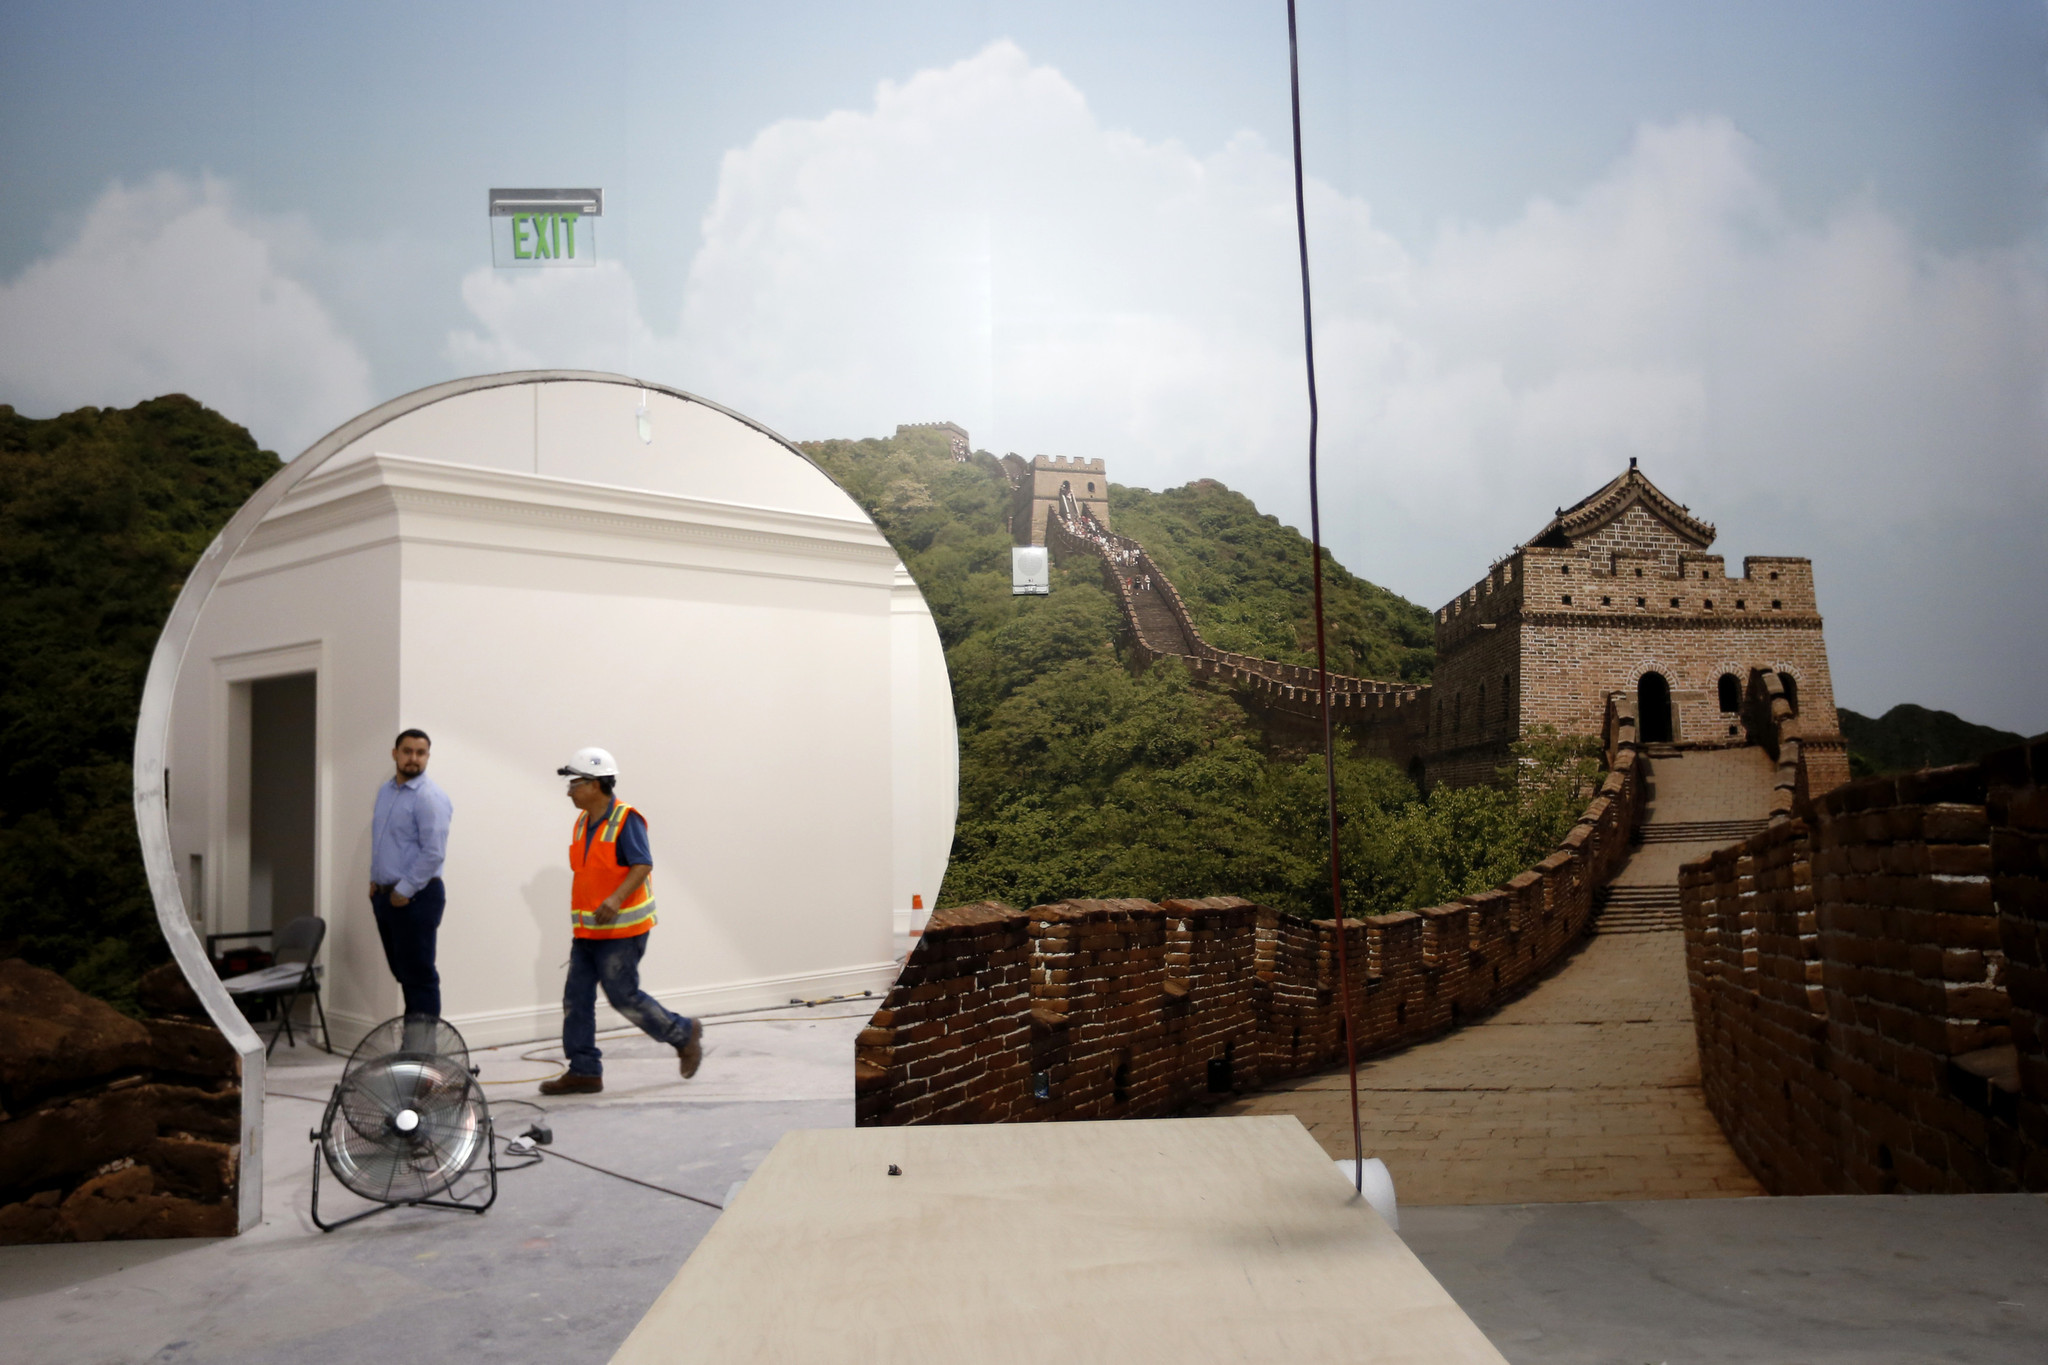 A depiction of The Great Wall of China commemorating President Nixon's visit to the People's Republic of China, located in the Presidency Room under construction during a tour of the new Richard Nixon Library and Museum.